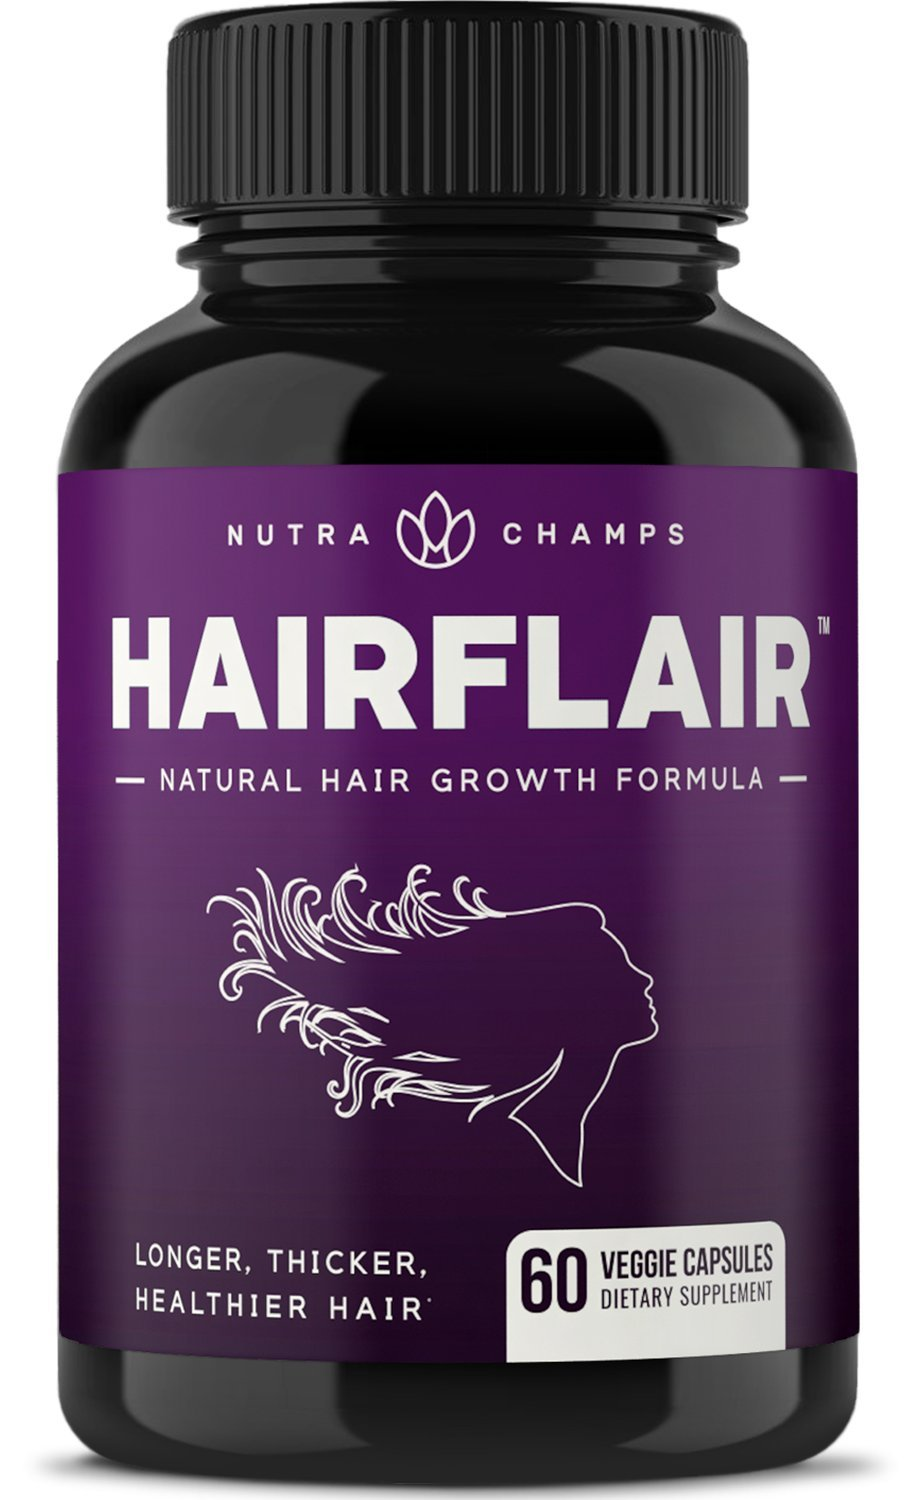 HairFlair - Hair Growth Vitamins with Biotin for Longer, Stronger, Healthier Hair - Hair, Skin and Nails Supplement - for All Hair Types - Premium Formula with Keratin, Collagen, Bamboo, Aloe & More! by NutraChamps